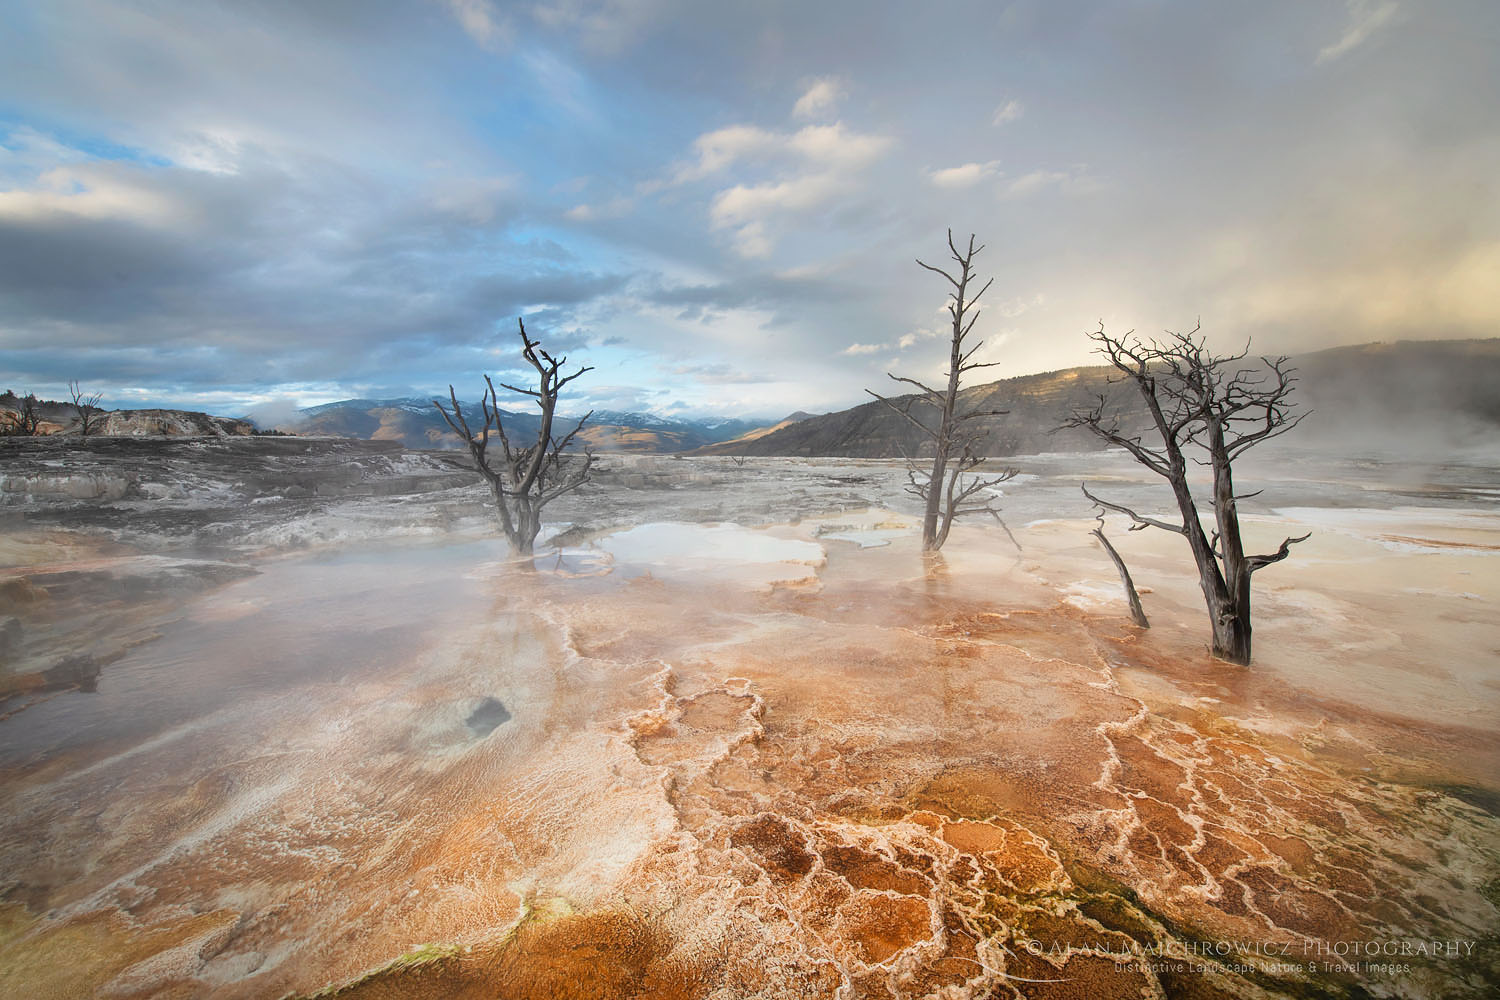 Mammoth Hot Springs Yellowstone National Park New Images Yellowstone Teton Glacier